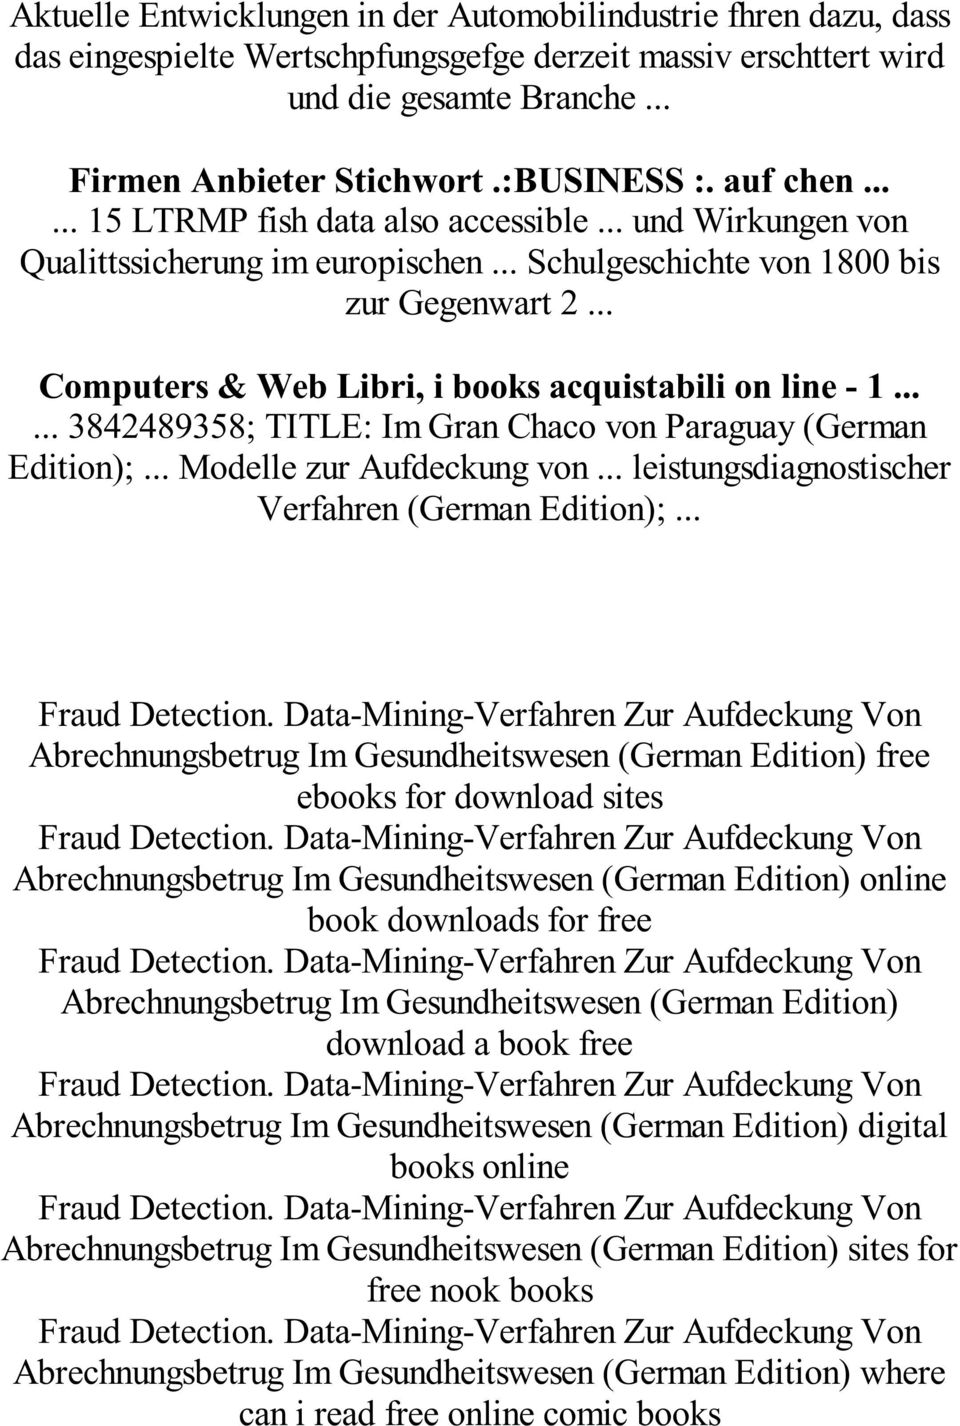 .. Computers & Web Libri, i books acquistabili on line - 1...... 3842489358; TITLE: Im Gran Chaco von Paraguay (German Edition);... Modelle zur Aufdeckung von.